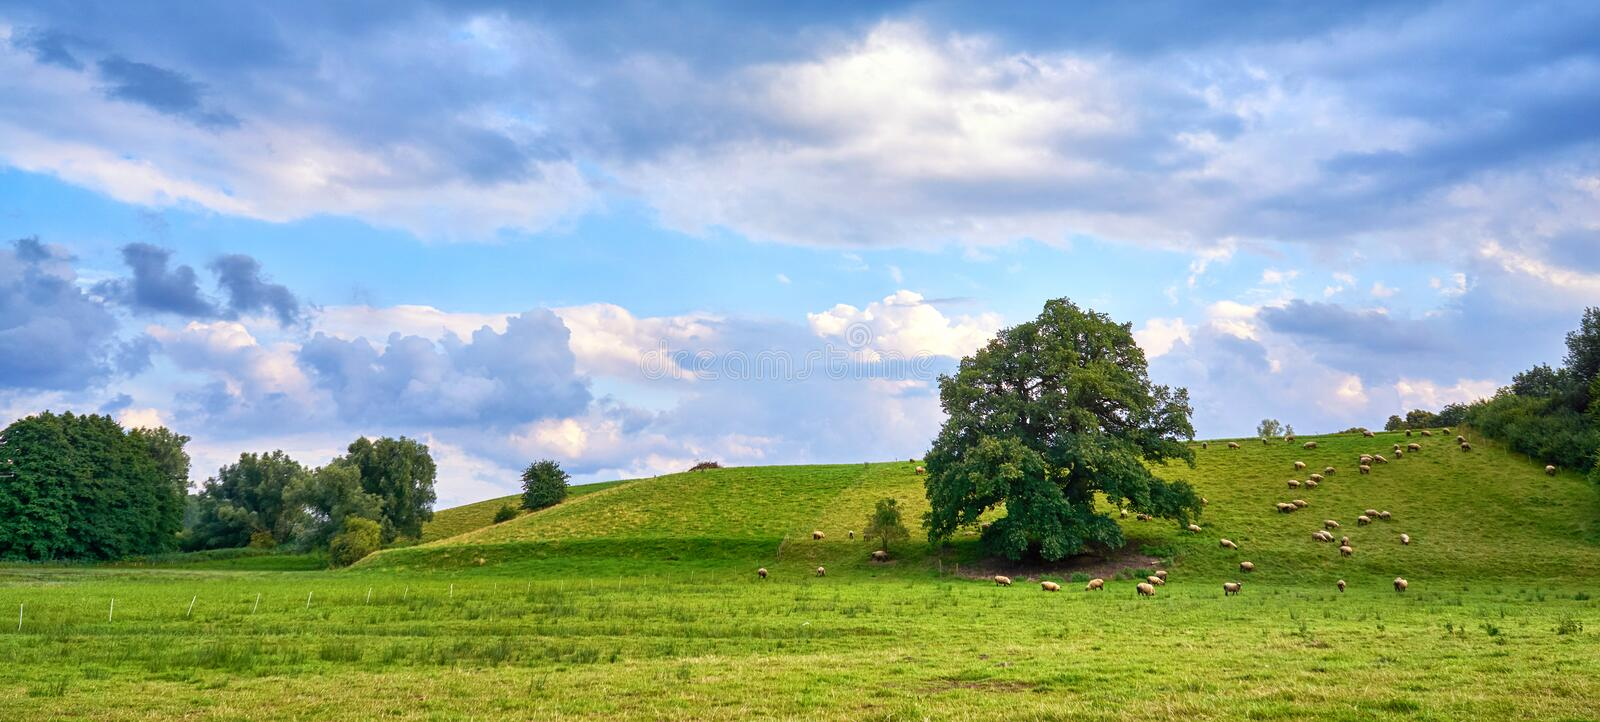 Sheep grazing under the shade of a tree on the hillside in a meadow. Countryside, grass, landscape, beautiful, environment, green, lamb, nature, outdoor royalty free stock photography